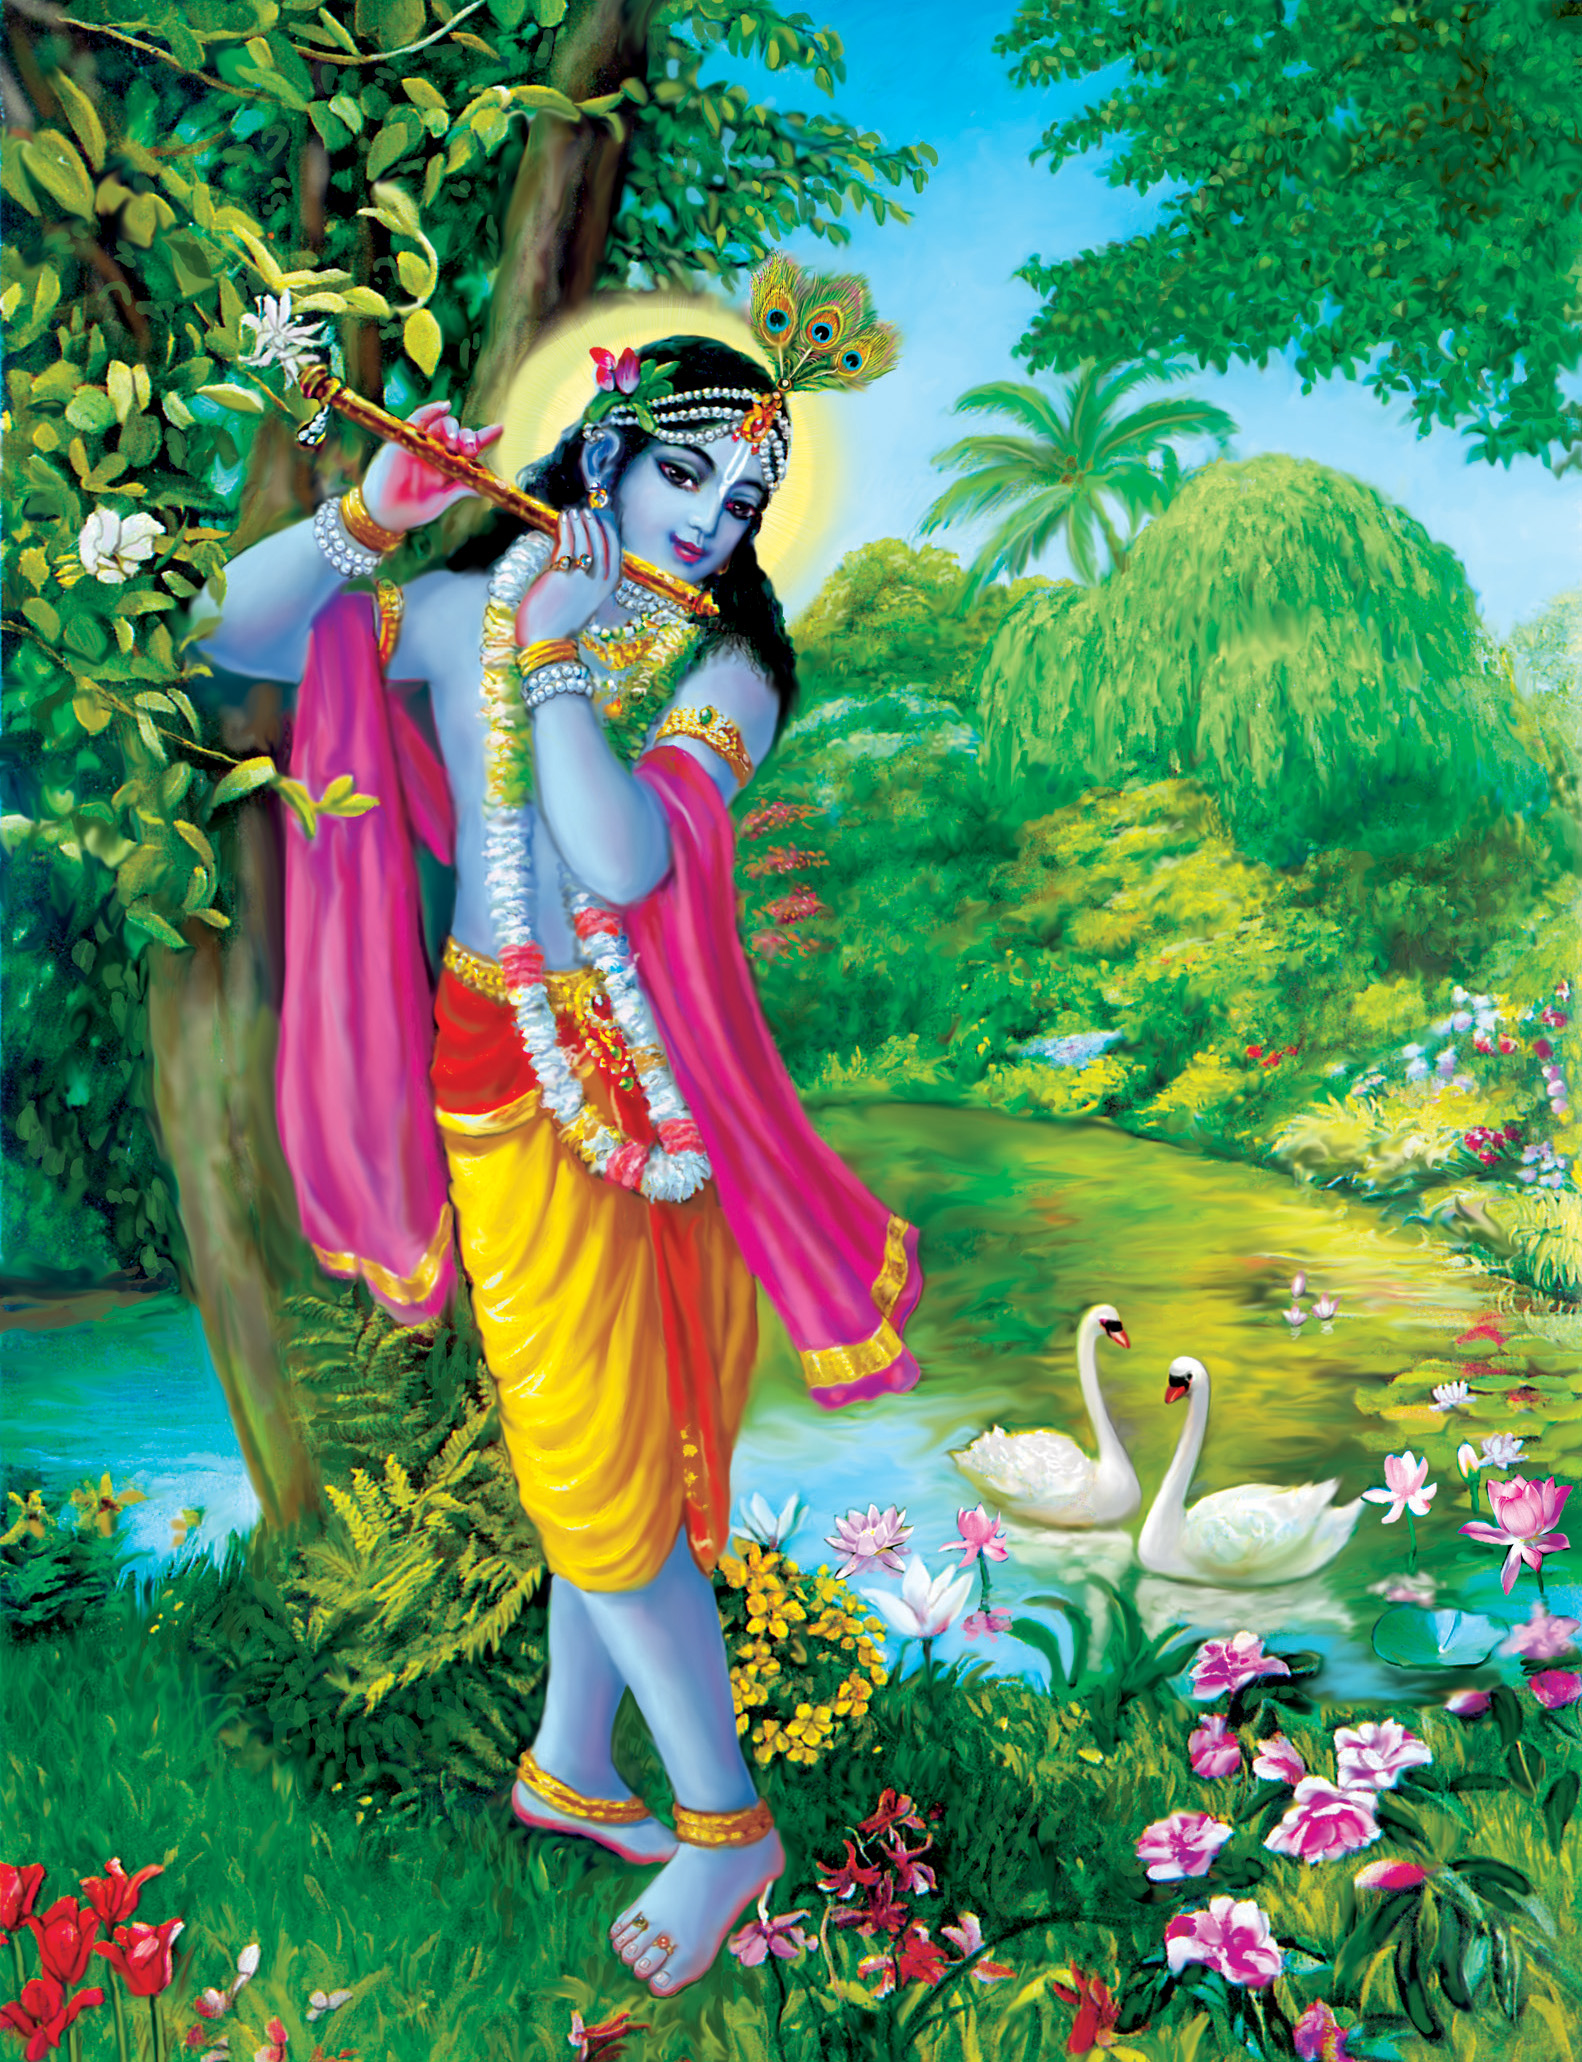 Bhagavad Gita: Of all yogis, he who abides in Me with great faith is the highest of all